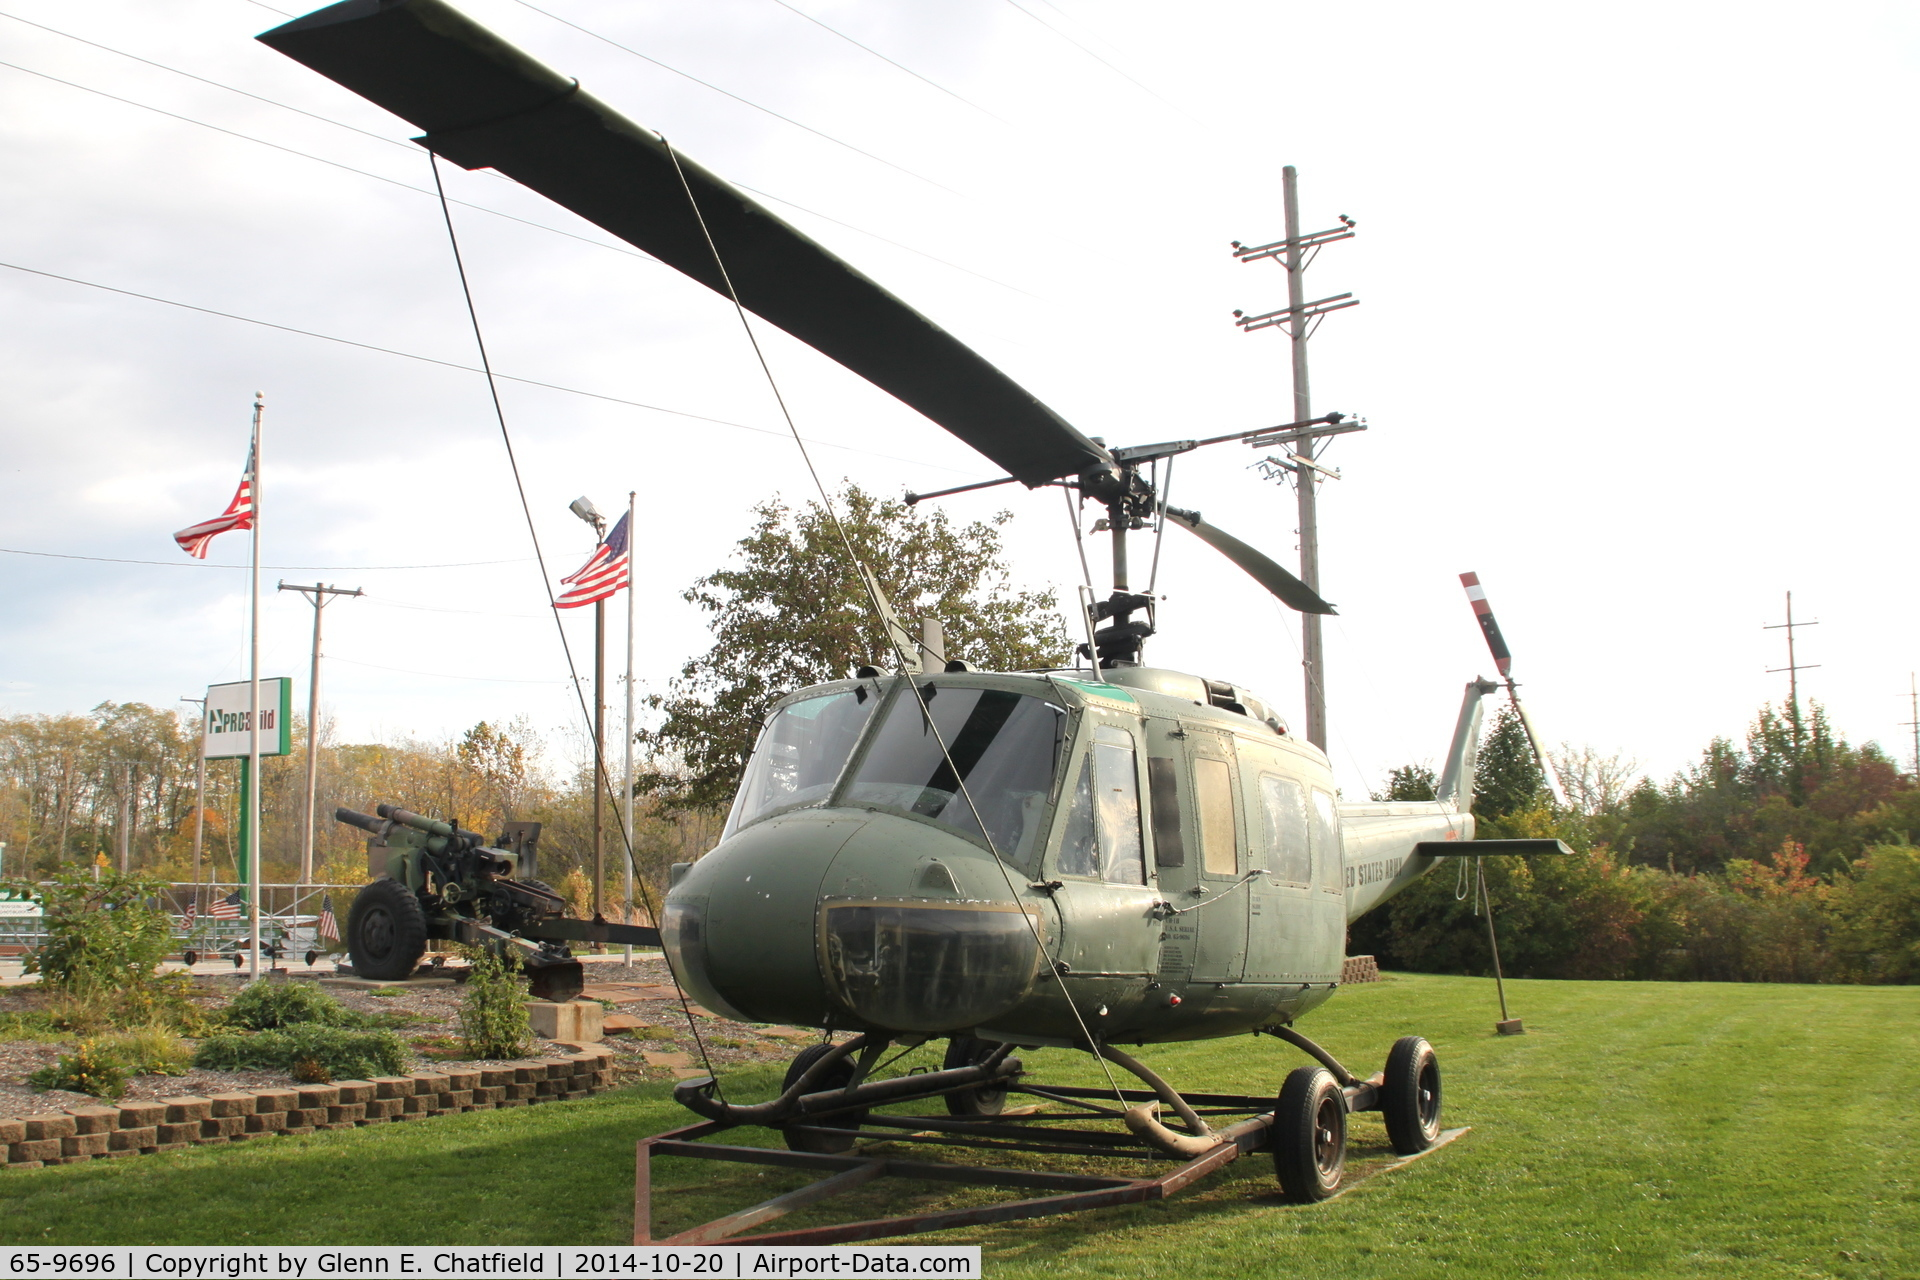 65-9696, 1965 Bell UH-1H Iroquois C/N 4640, At VFW post on Old Springfield RD, just east of Dixie Road, near NE corner of Dayton International Airport, Vandalia, OH